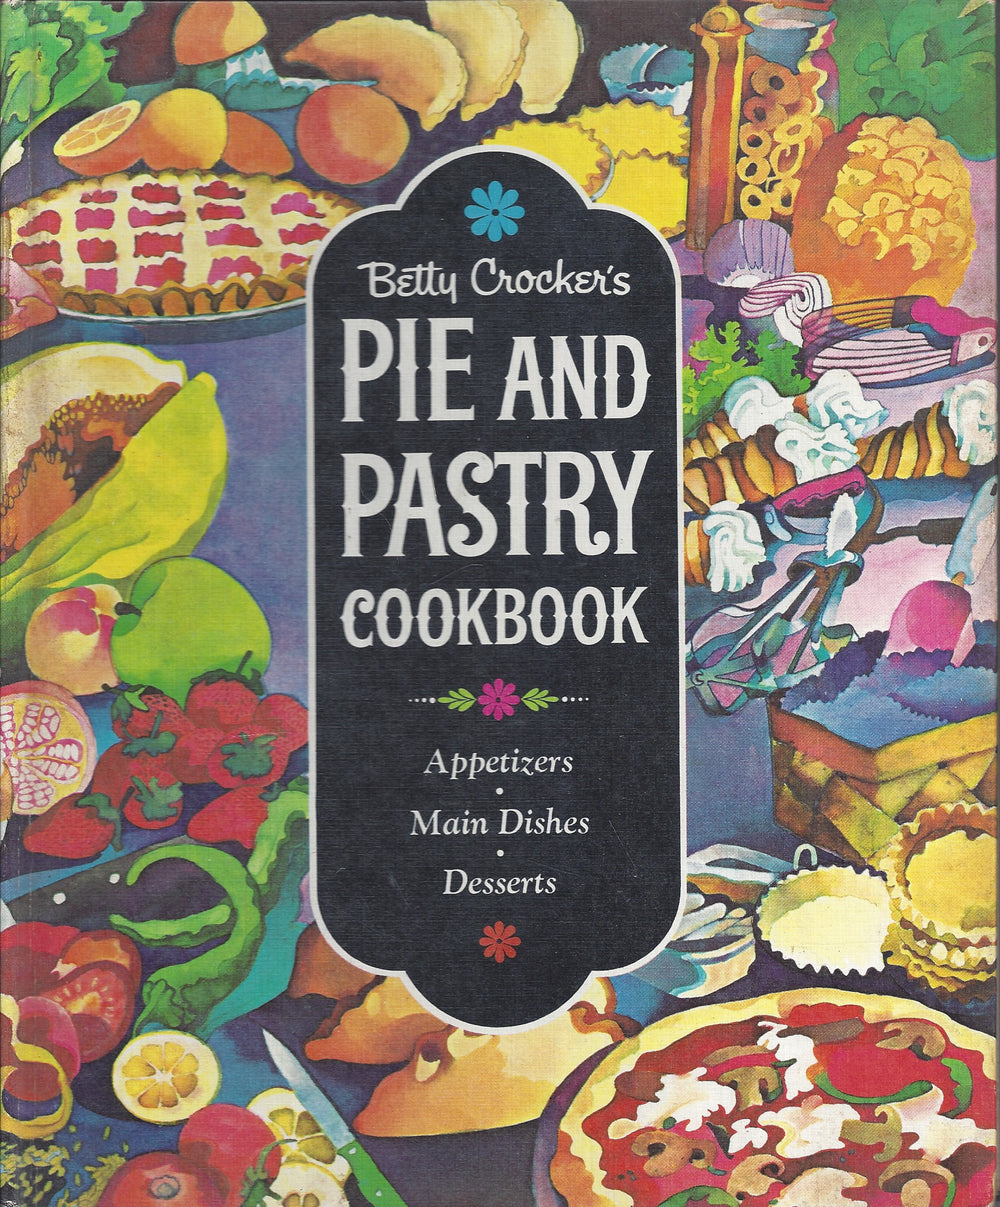 Betty Crocker's Pie and Pastry Cook Book 1968 1st Edition/Printing (Hardcover)